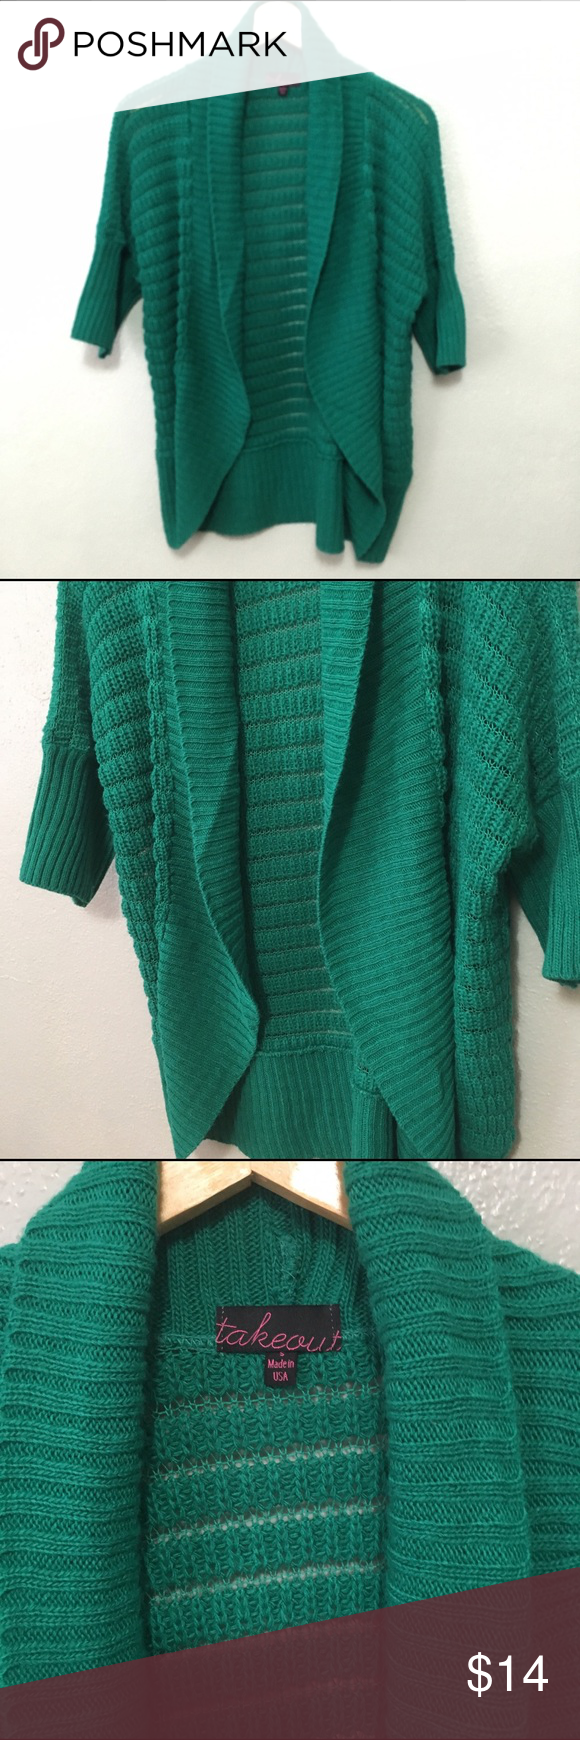 Takeout Aqua Green Cardigan Beautiful and colorful cardigan sweater size small. Item is in excellent condition with no rips, stains, or flaws! Please check out my other listings as I do offer a bundle discount, I love offers! Takeout Sweaters Cardigans